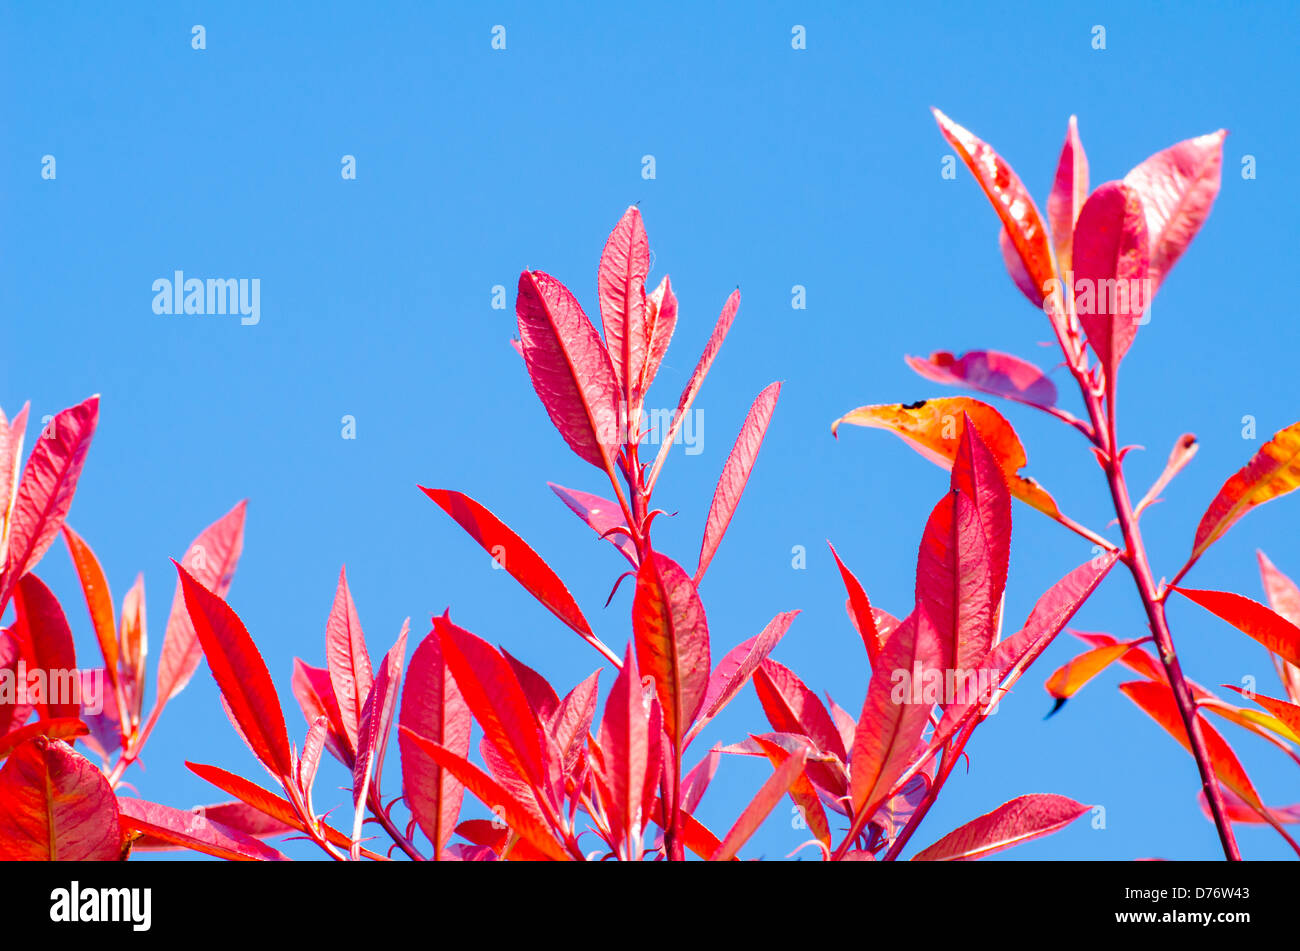 Leaves from a Red Robin shrub (Photinia x fraseri) against blue sky in Spring. - Stock Image